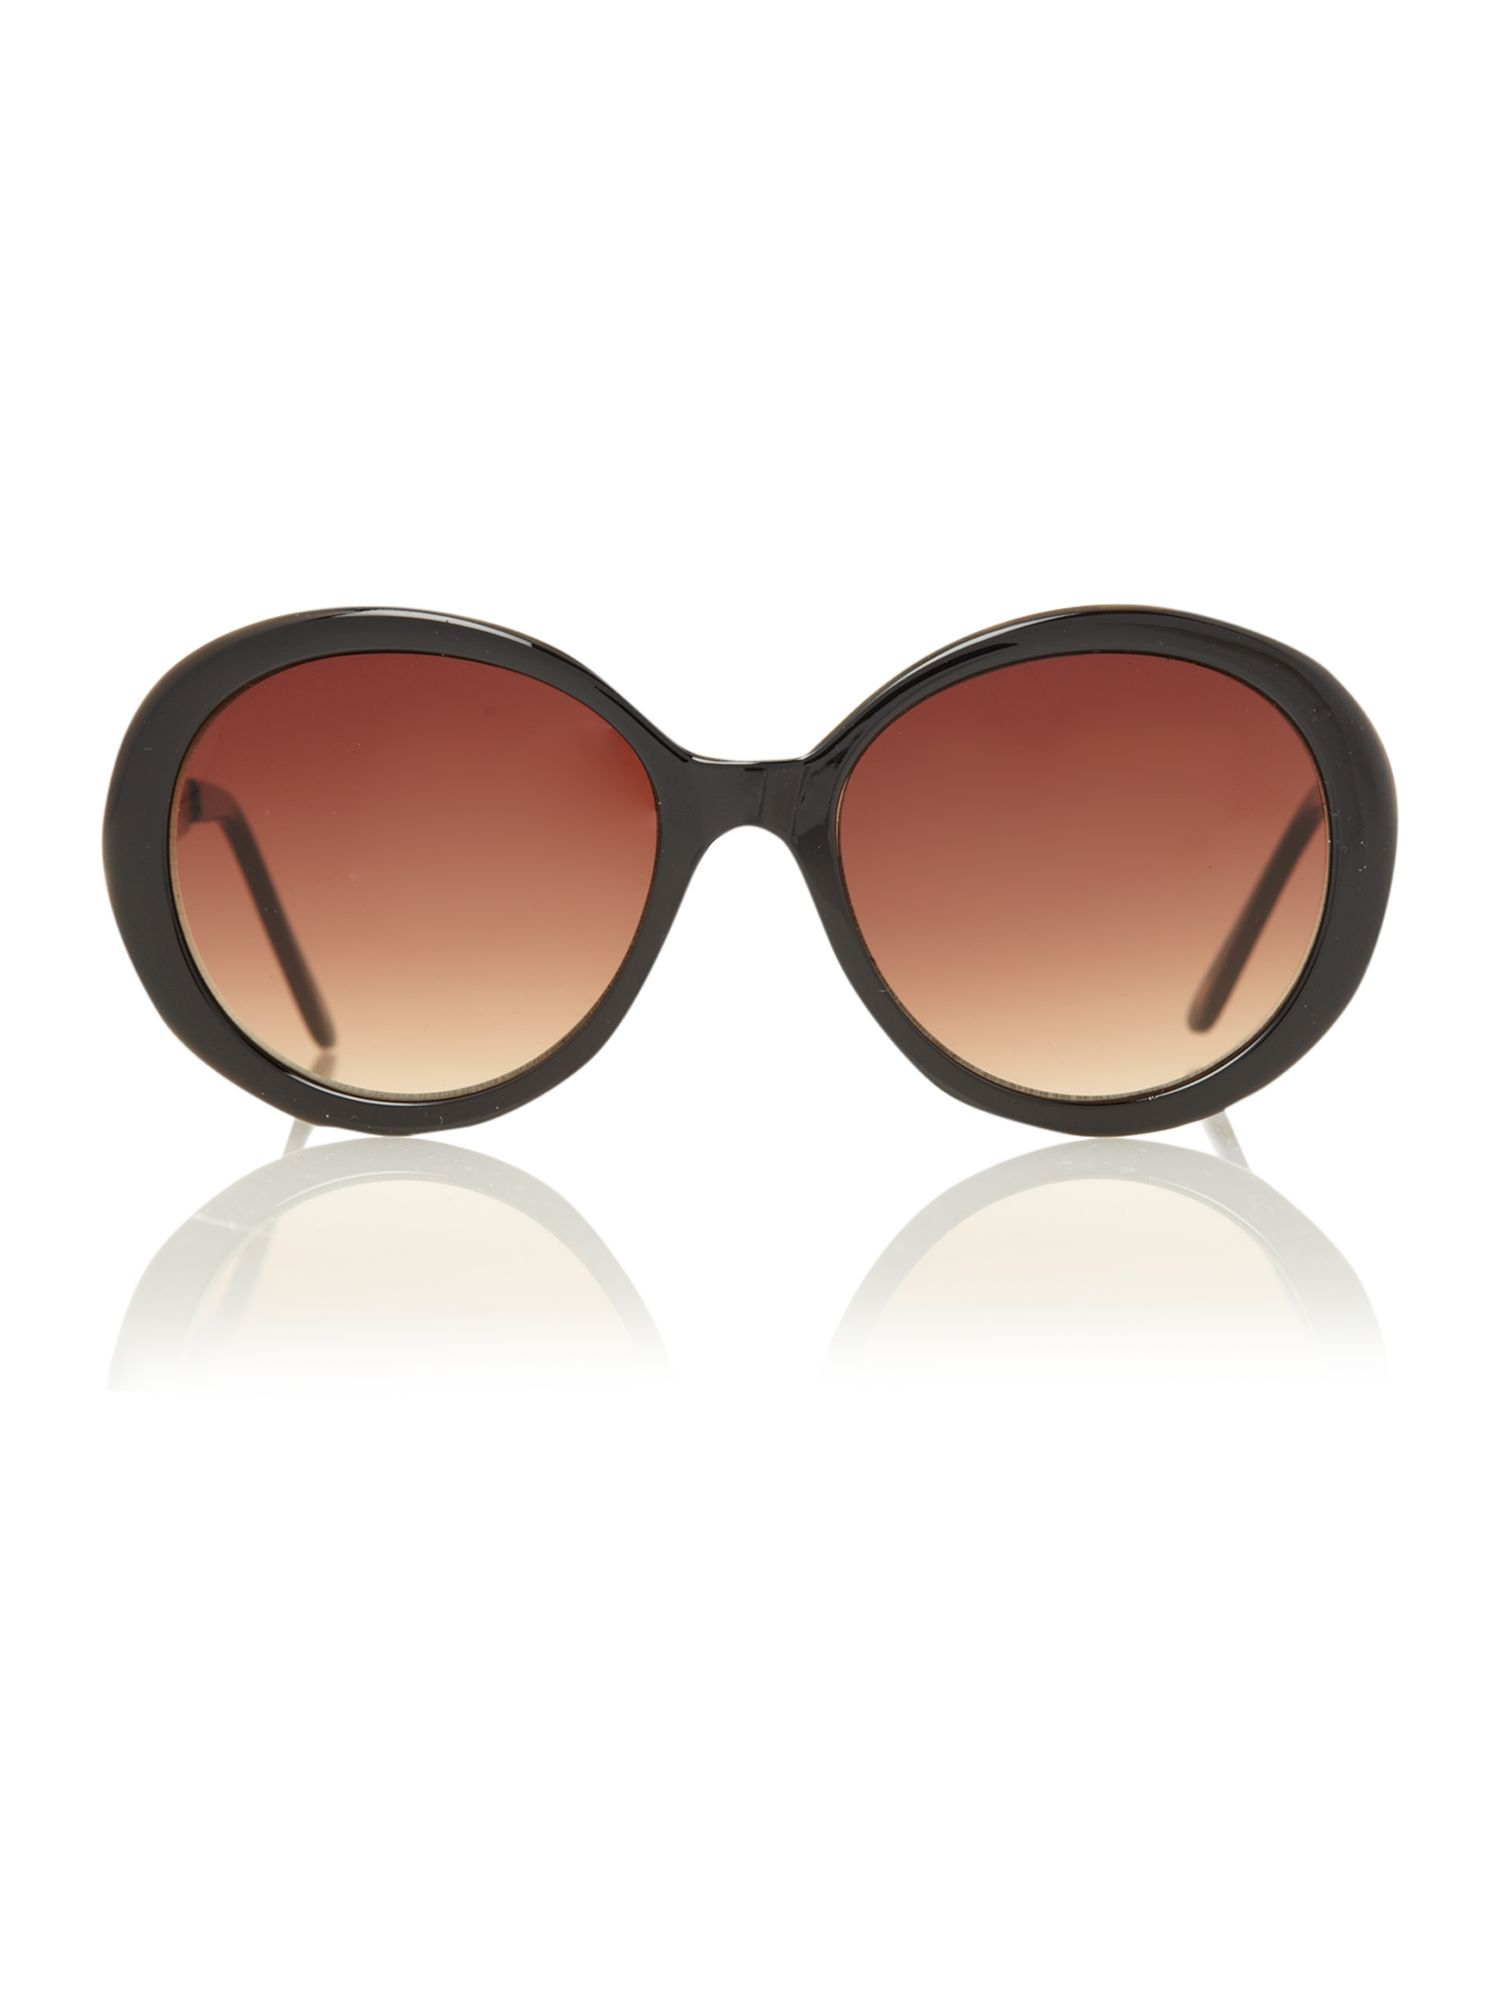 Black circular filagree sunglasses